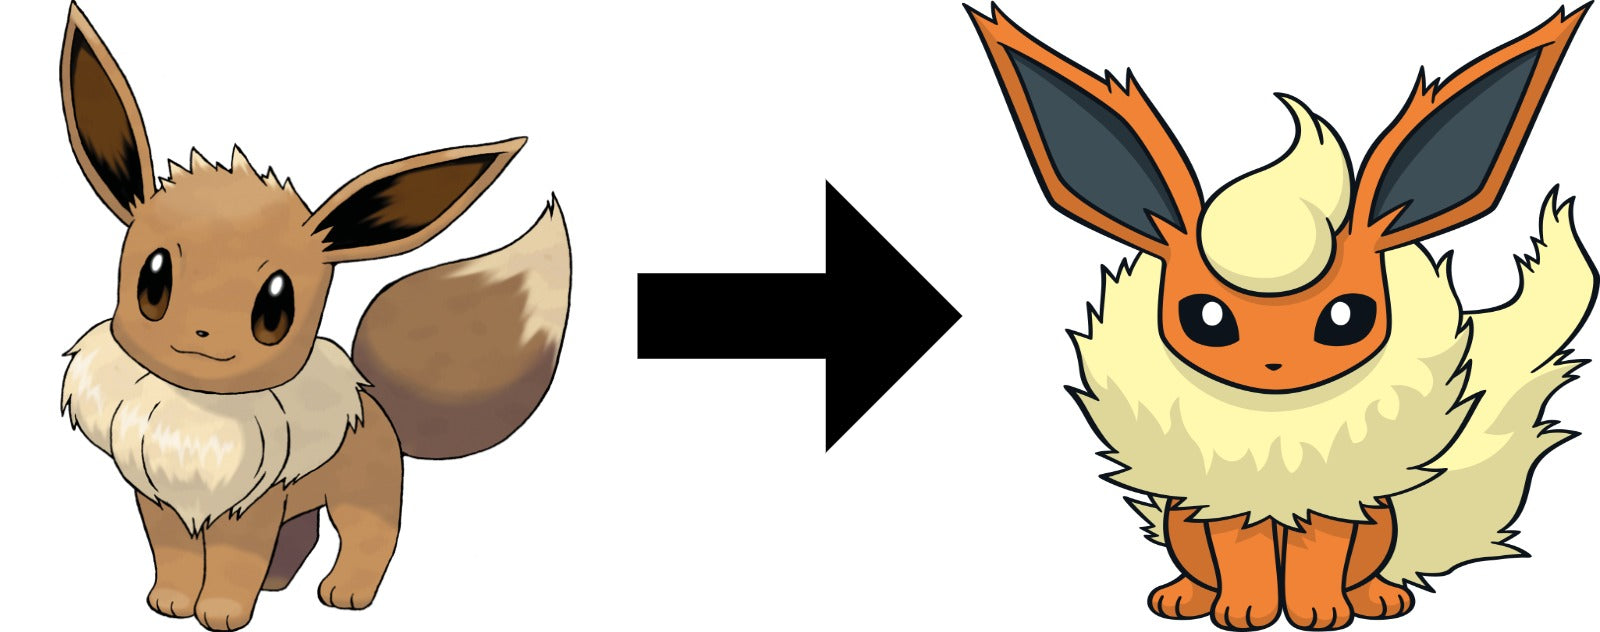 How to Evolve Eevee into Flareon in pokemon sword and shield